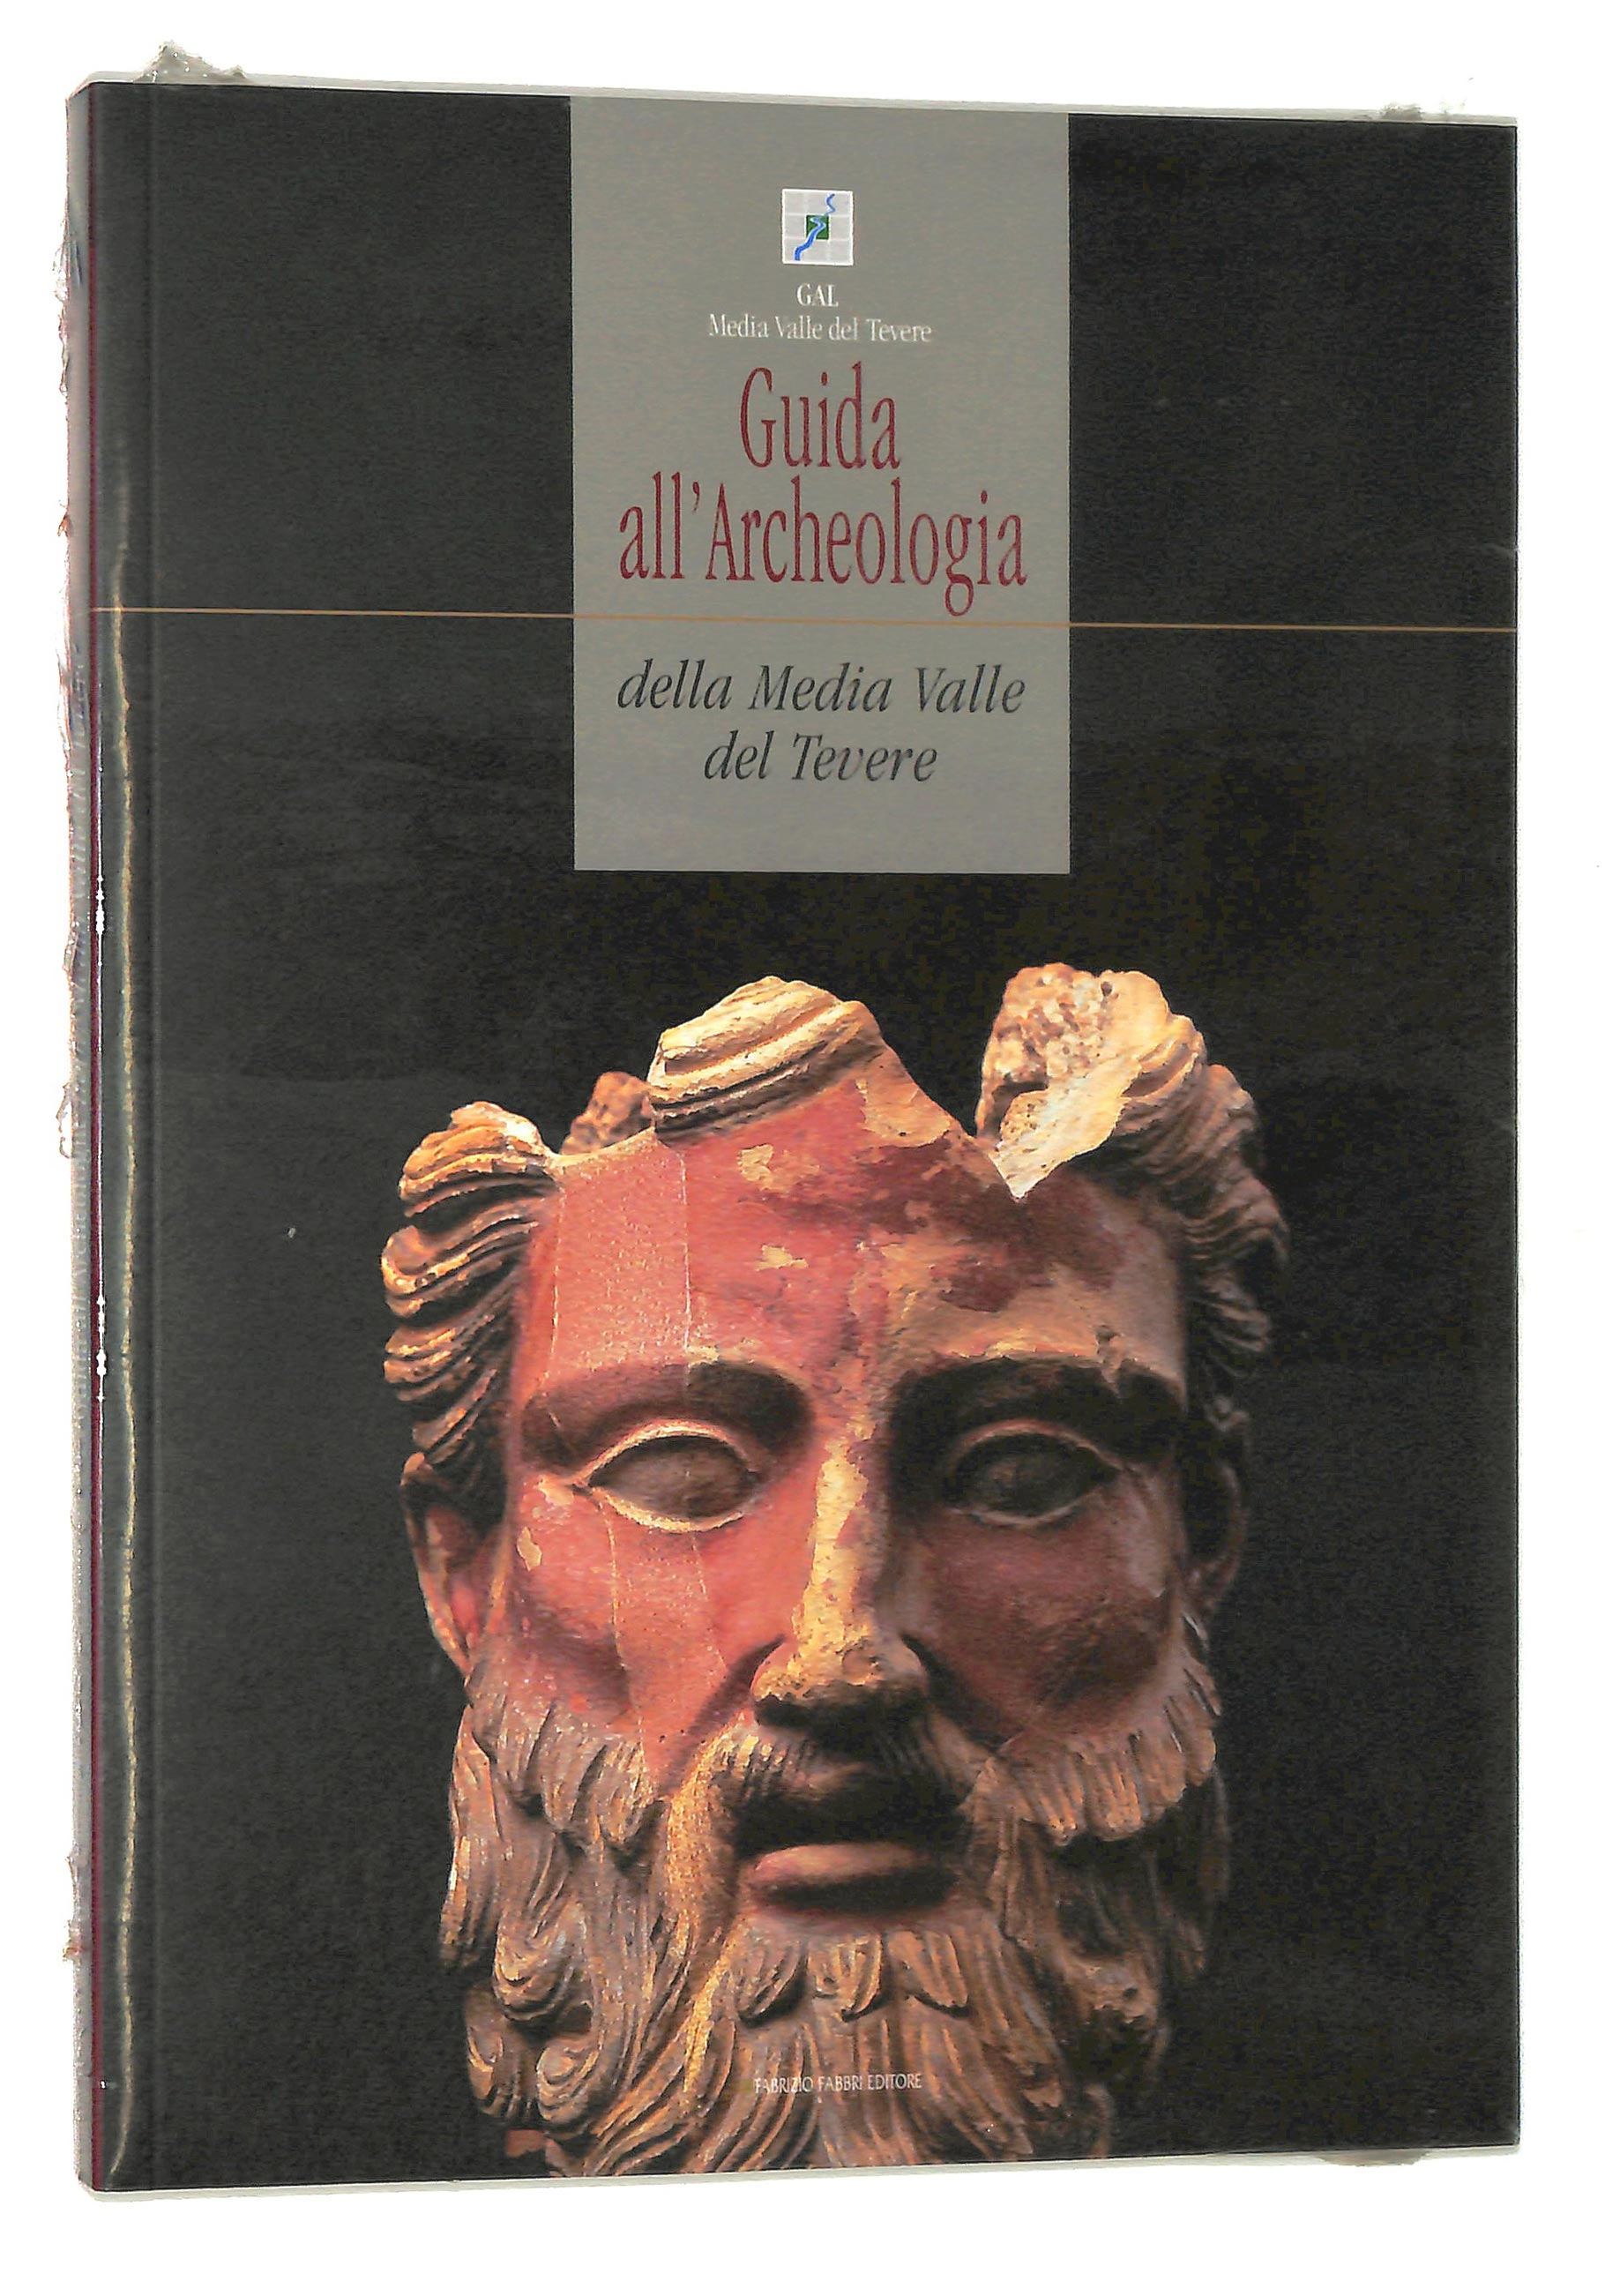 Guida all'Archeologia della Media Valle del Tevere. Guide To The Archeology Of Central Tiber Valley